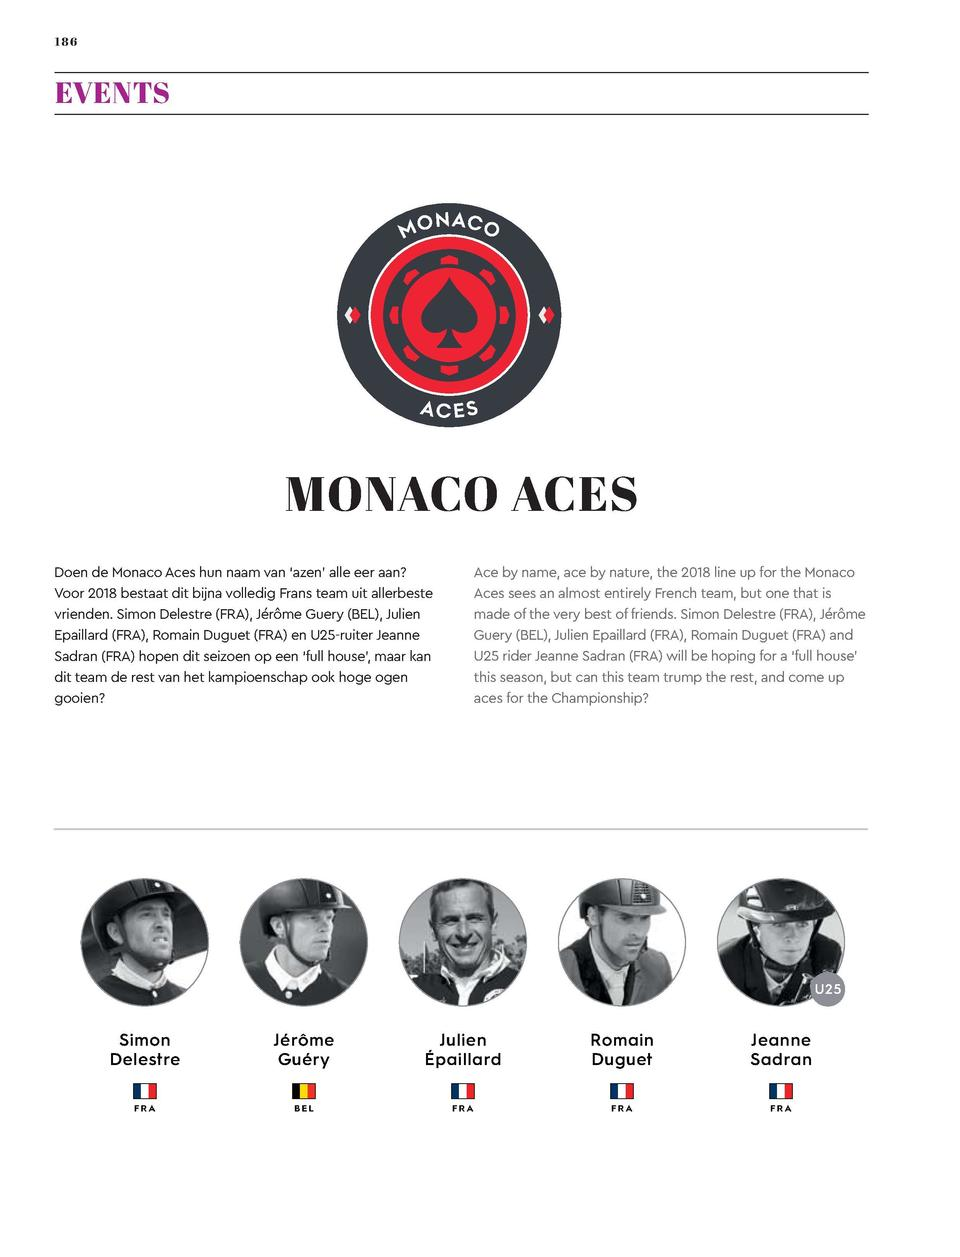 186  187  EVENTS  Global Champions League  MONACO ACES  CHANTILLY PEGASUS  Ace by name, ace by nature, the 2018 line up fo...